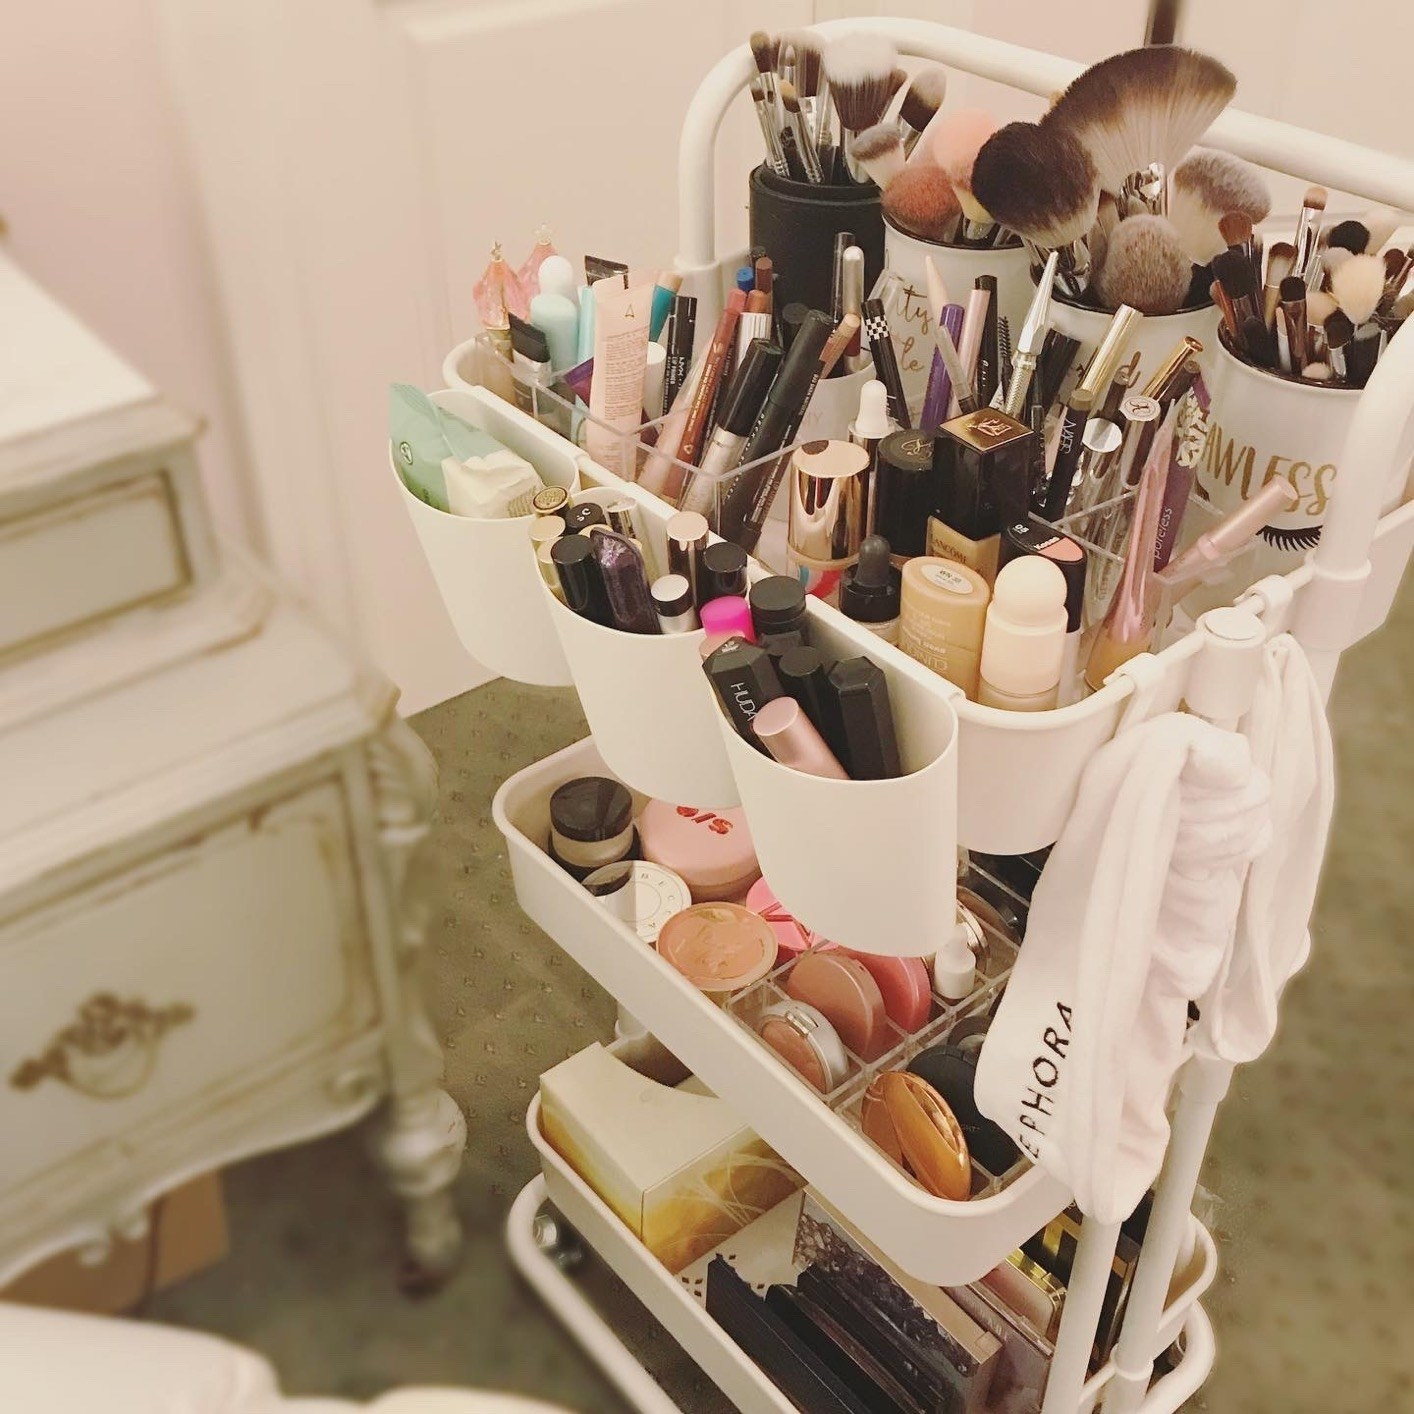 reviewer's large makeup collection stored on a rolling cart